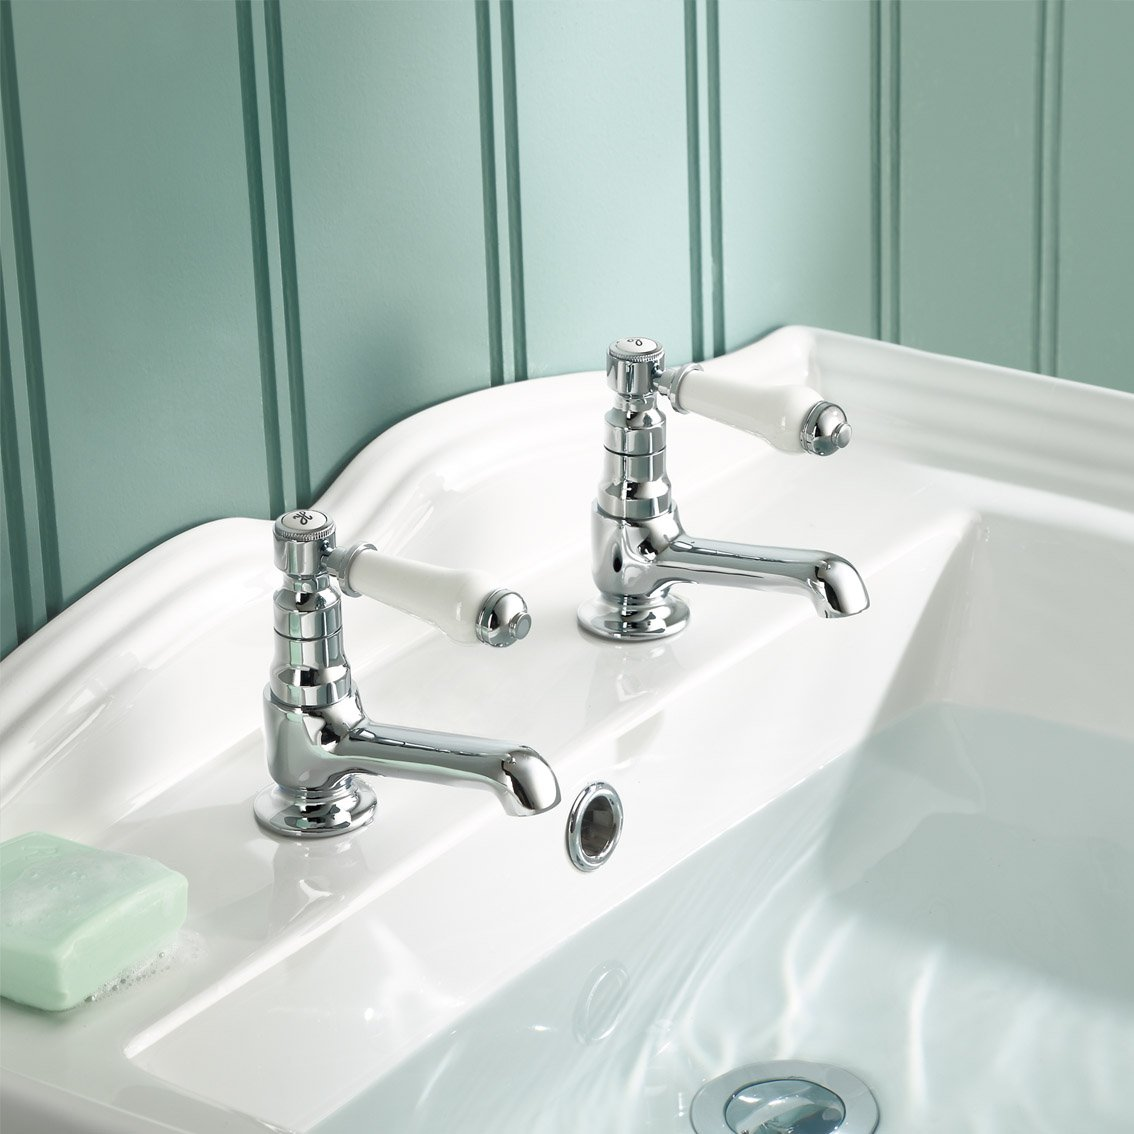 Traditional Twin Basin Sink Hot and Cold Taps Pair Chrome Bathroom ...